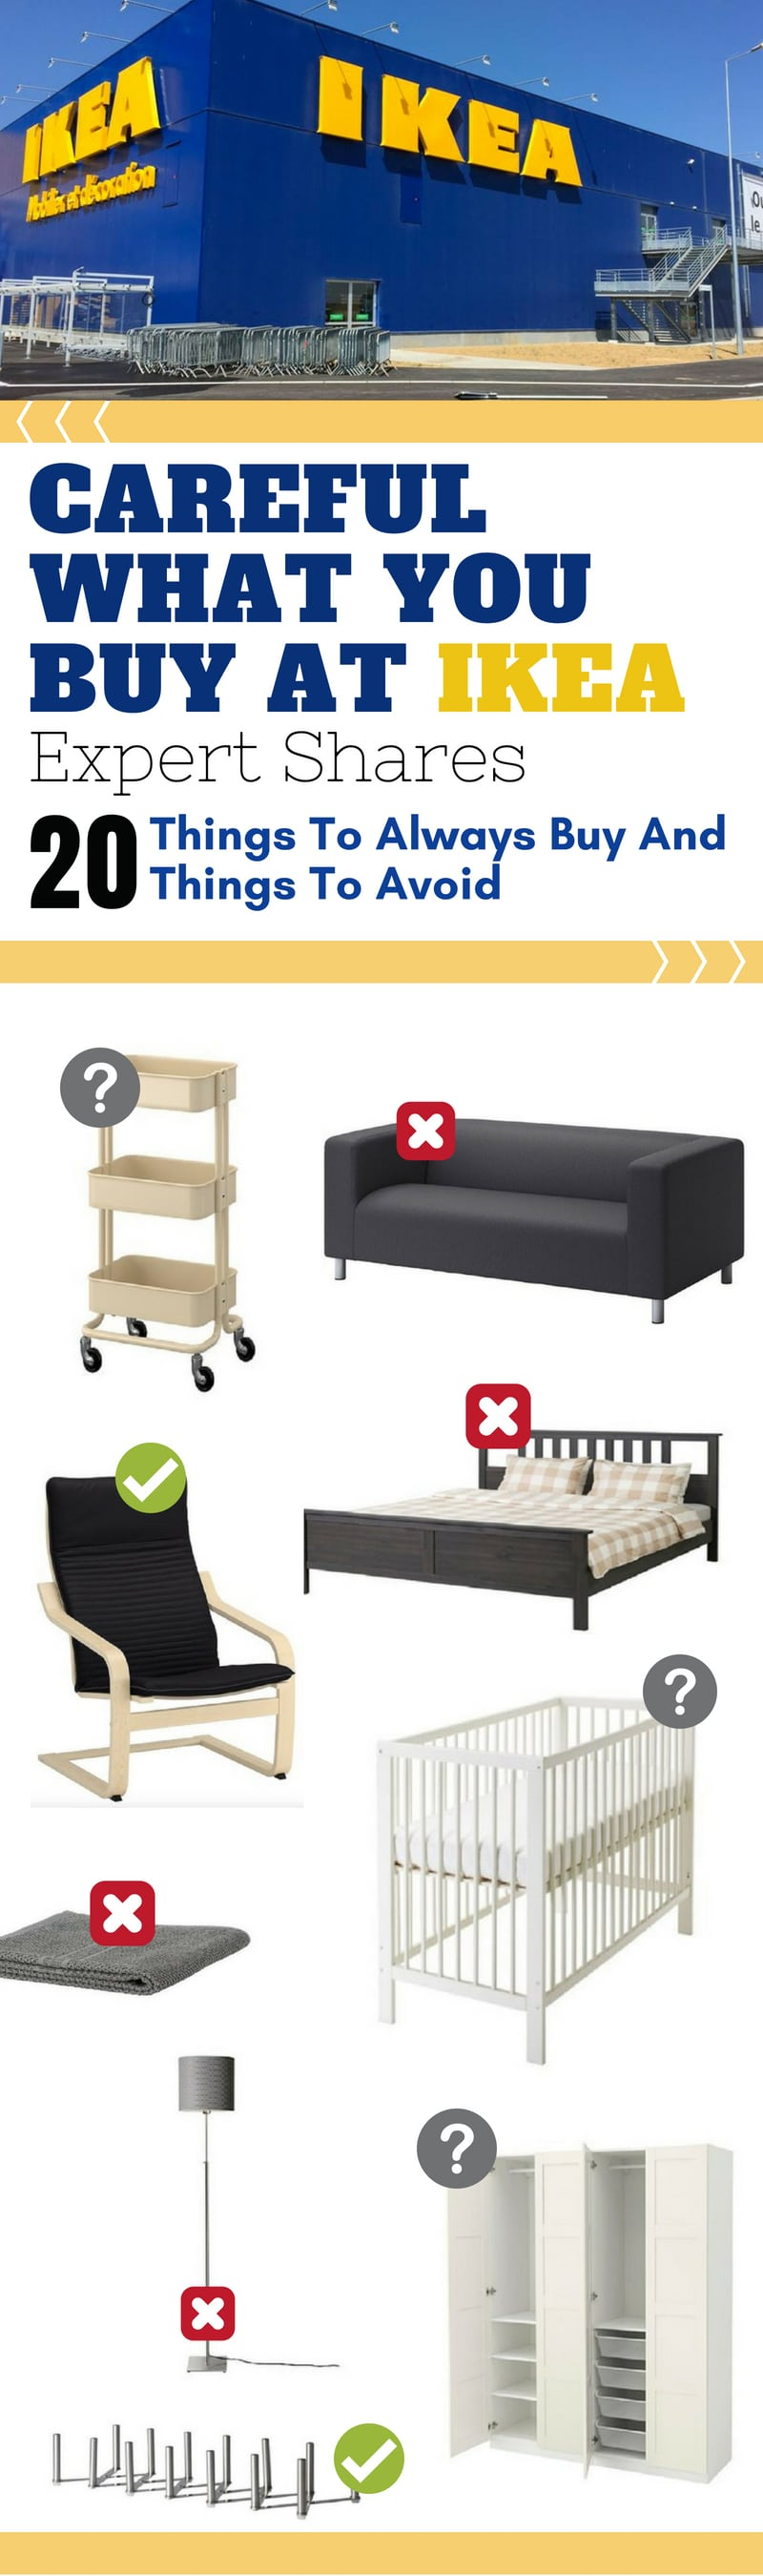 Ikea Bank Bad Things To Buy And Avoid At Ikea